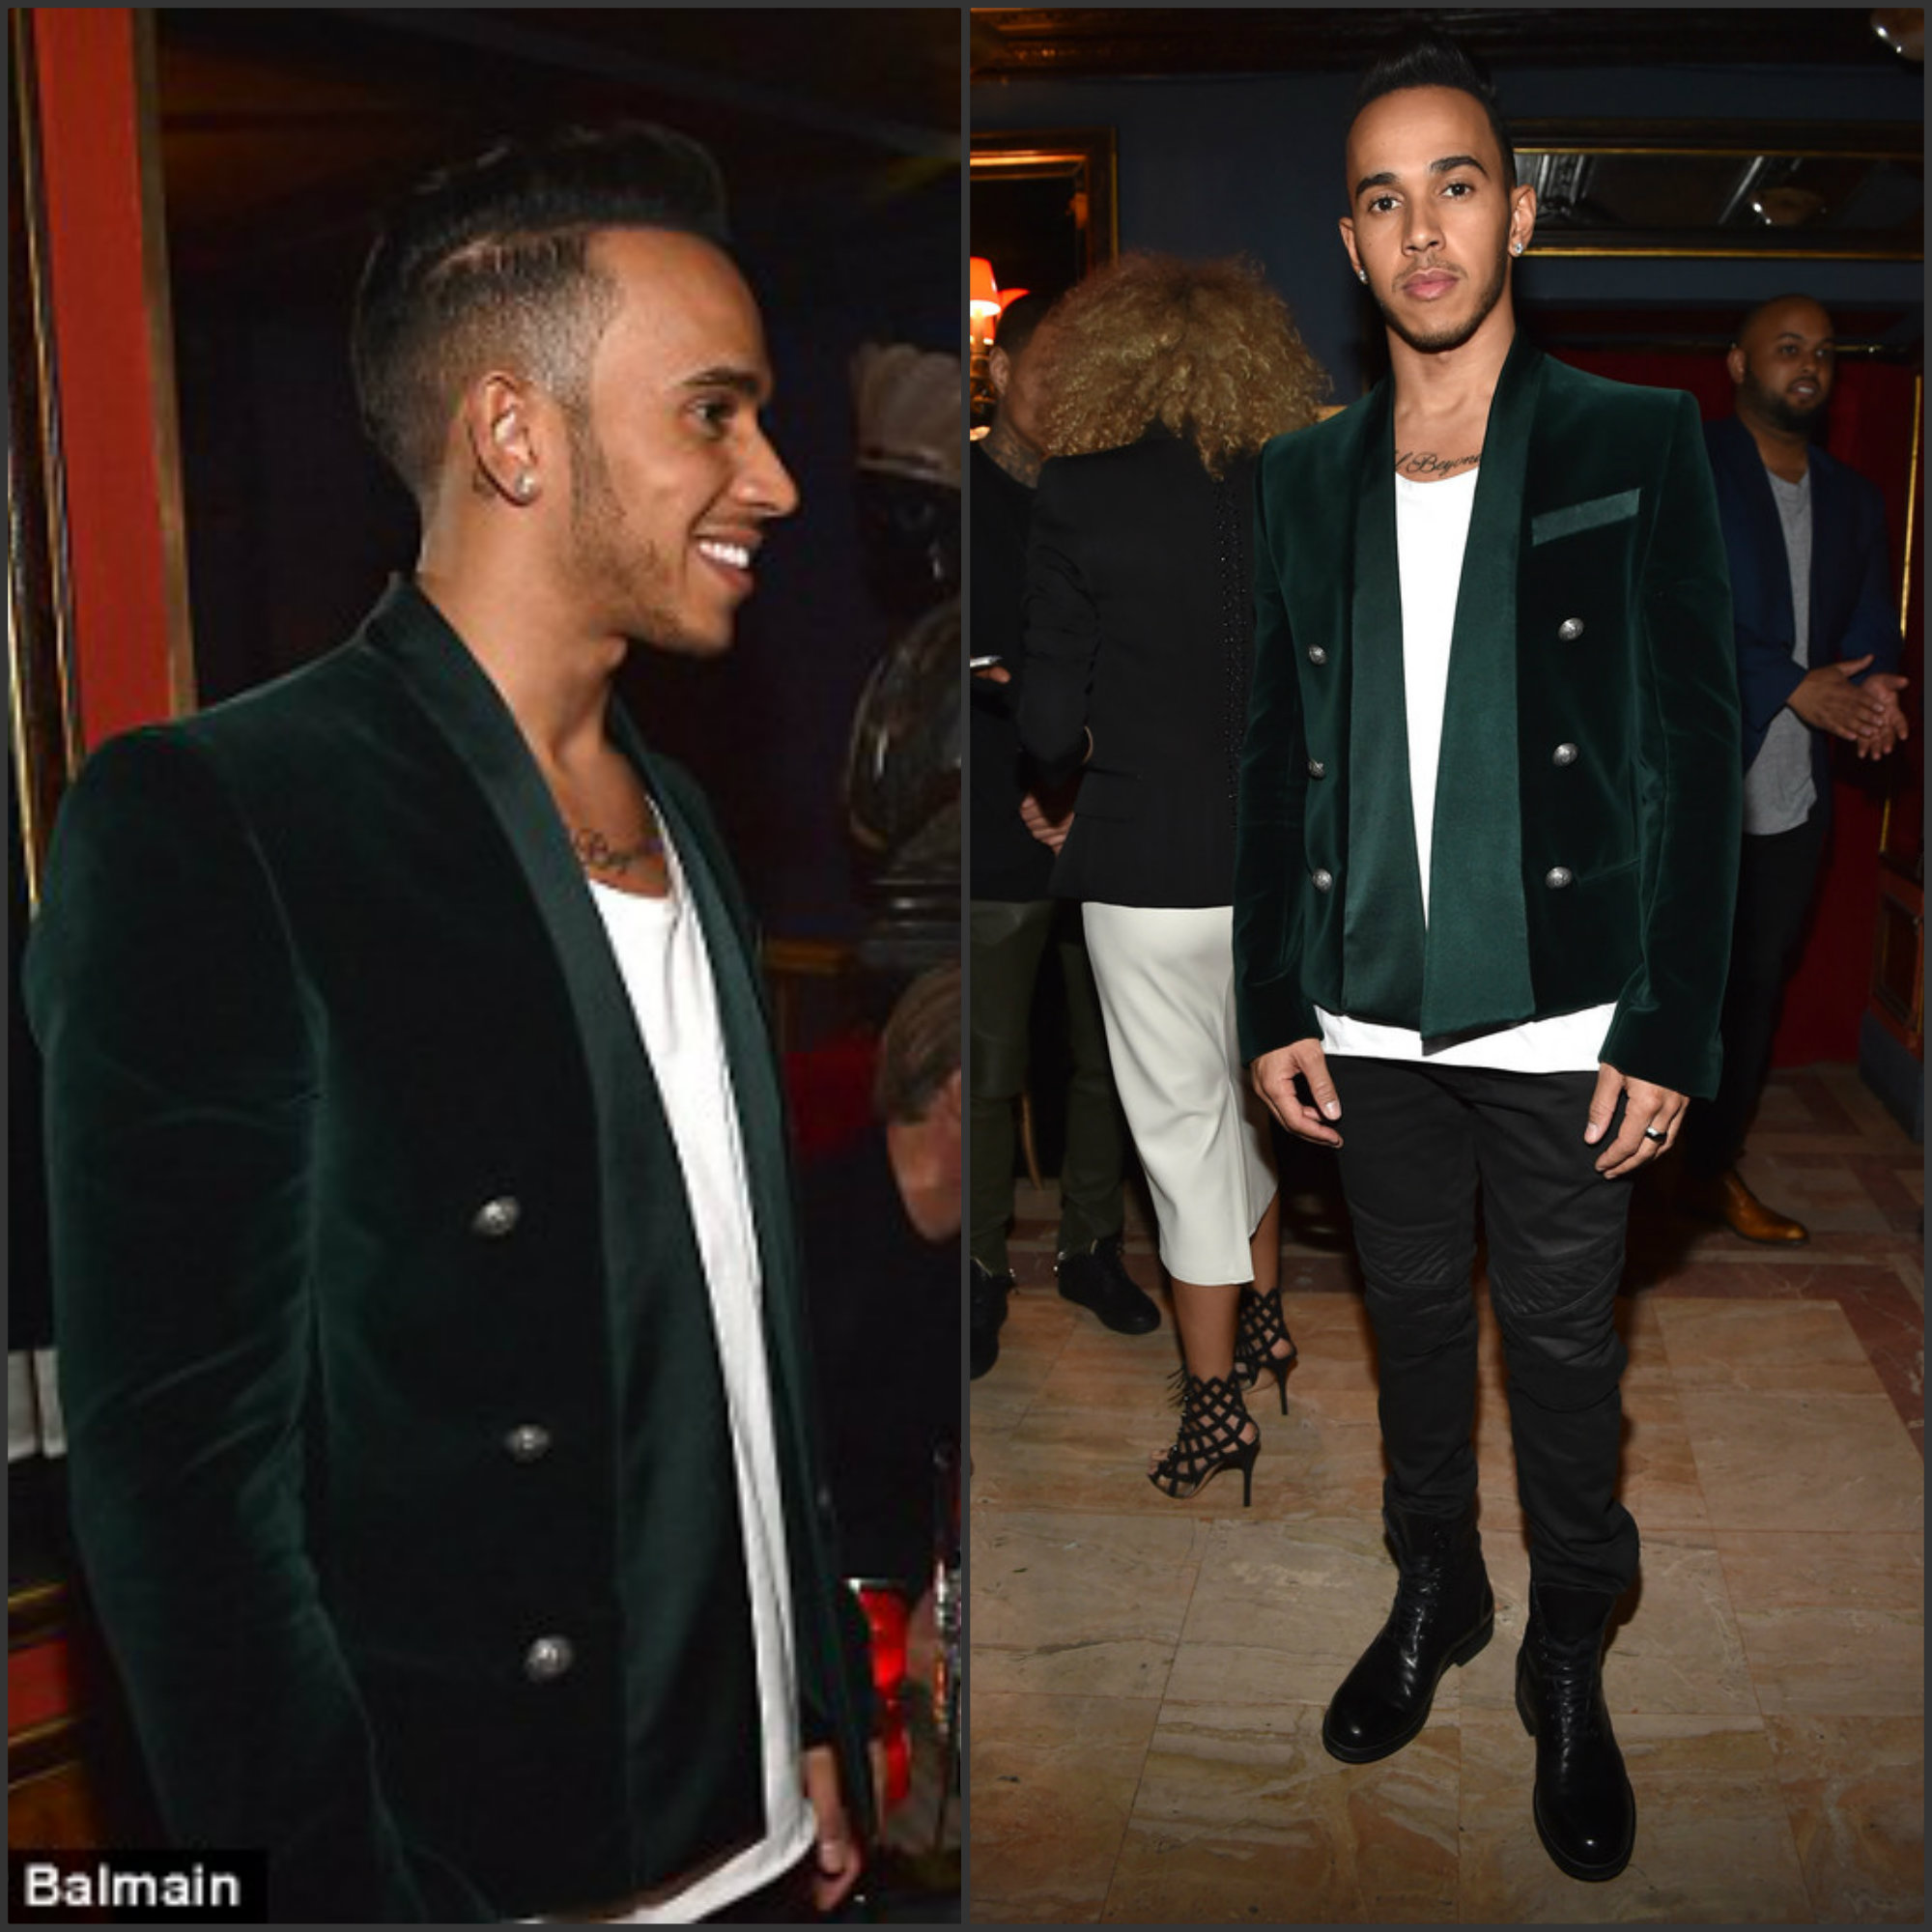 Lewis-Hamilton-in-Balmain-Jacket-Balmain-Fashion-Week-Dinner